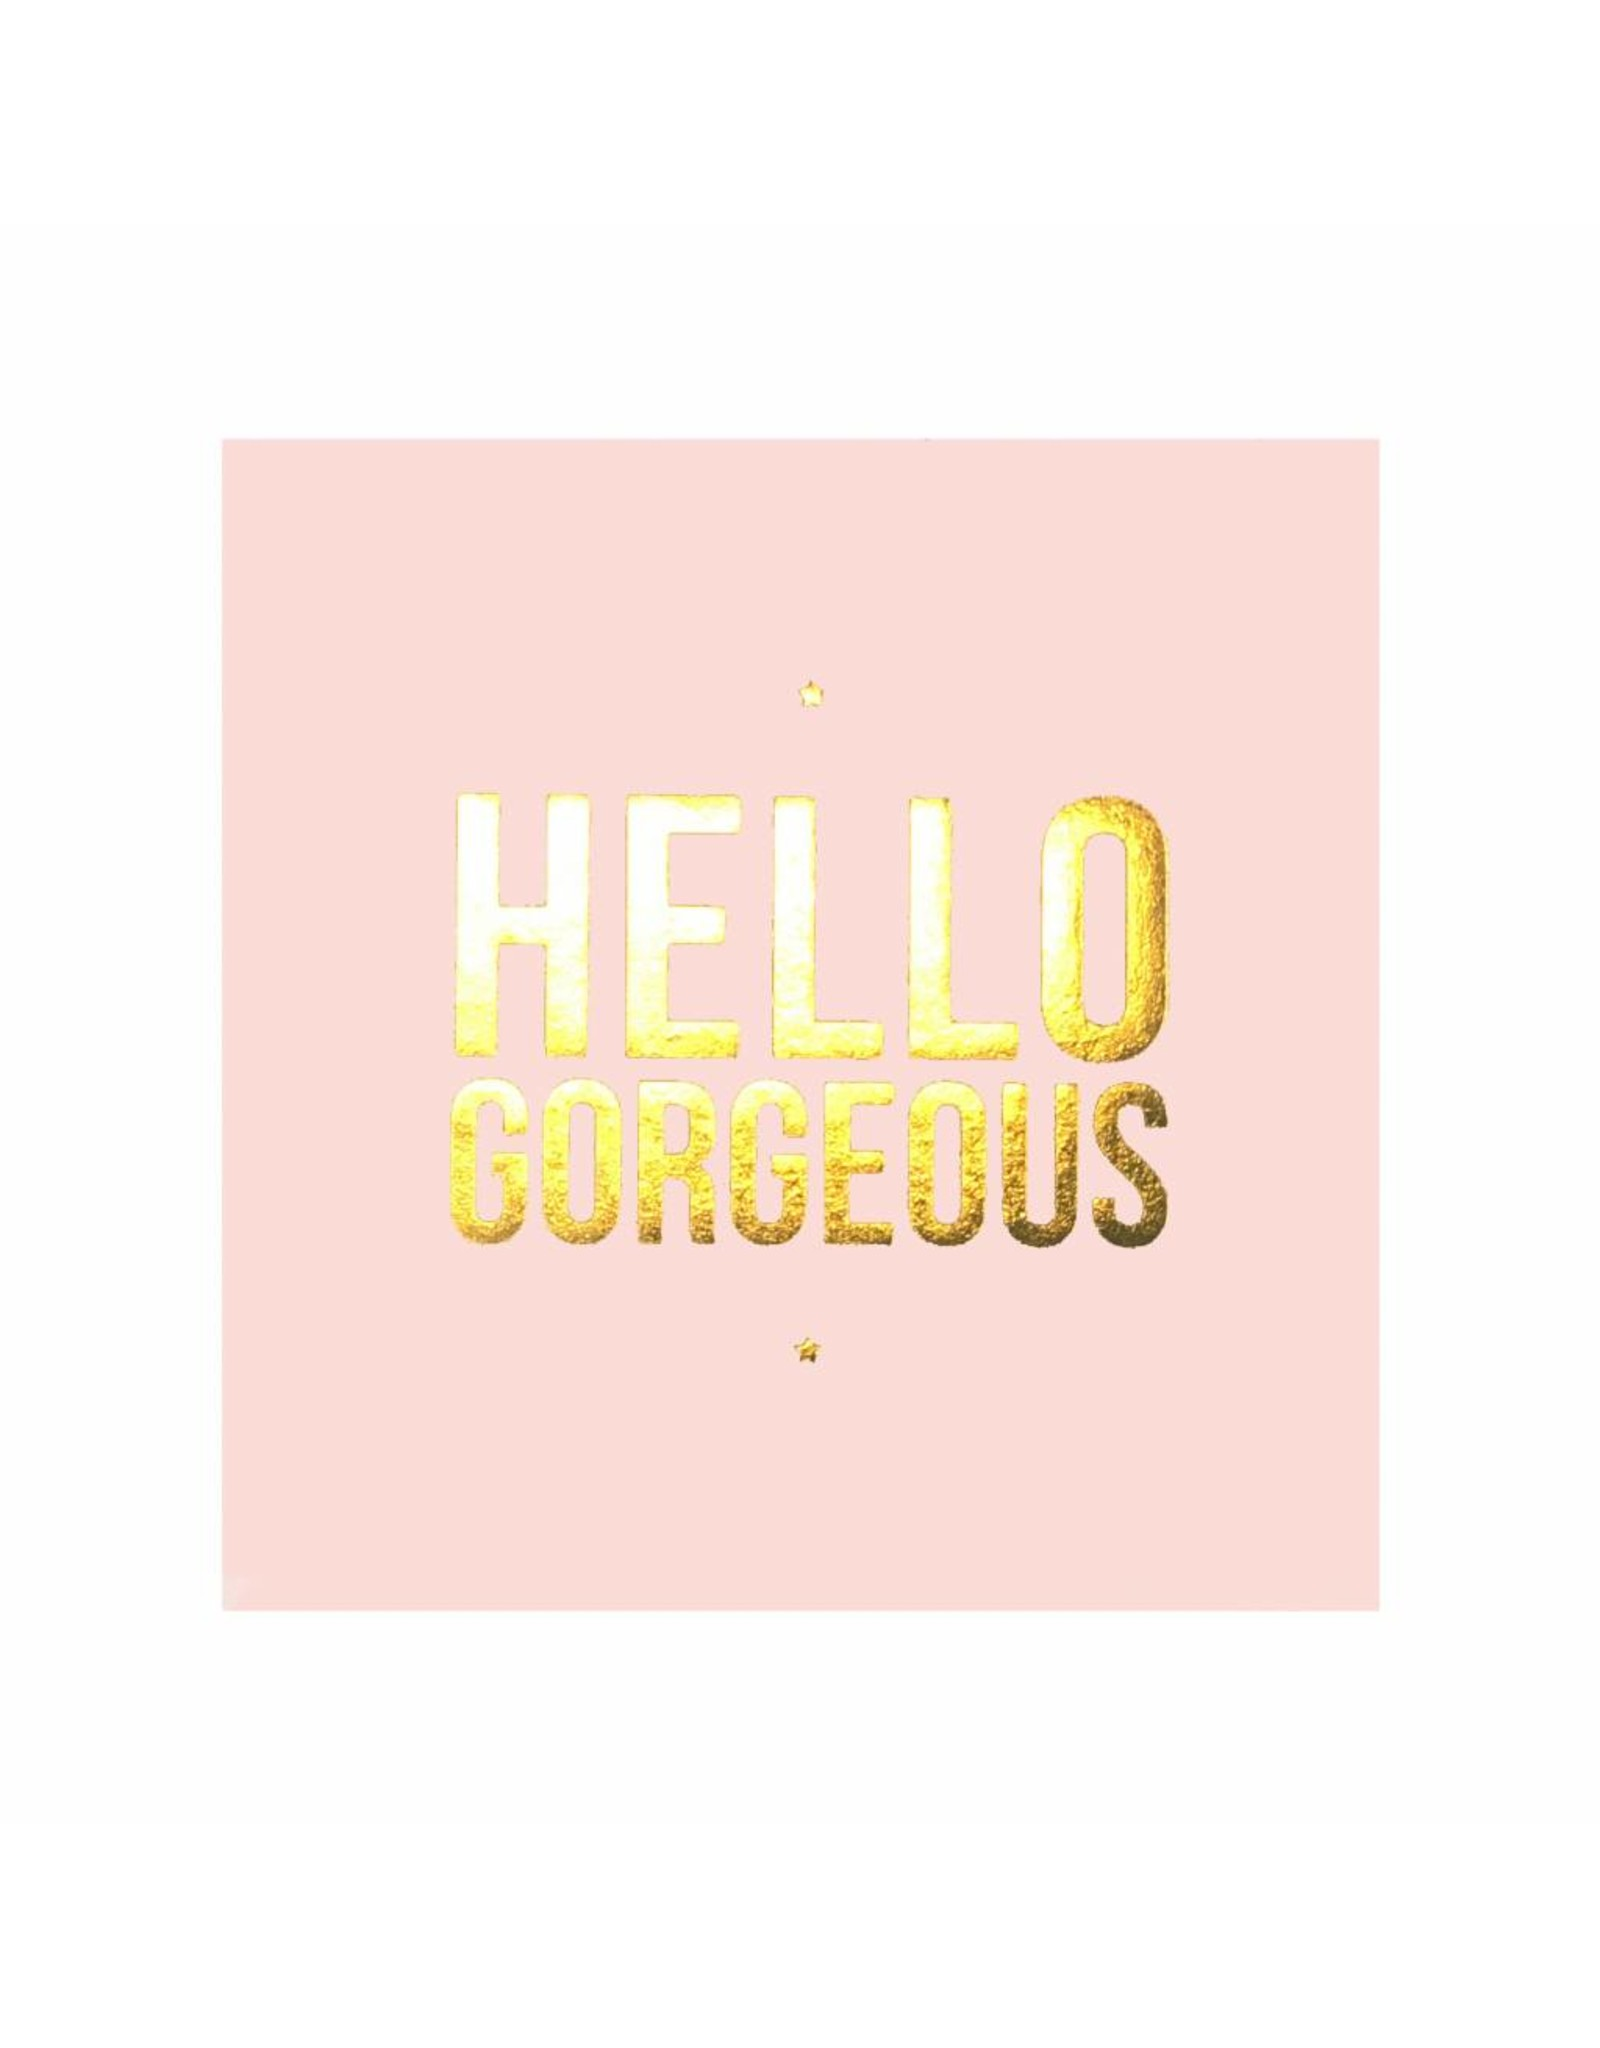 Stickers 5 st. HELLO GORGEOUS roze/goud